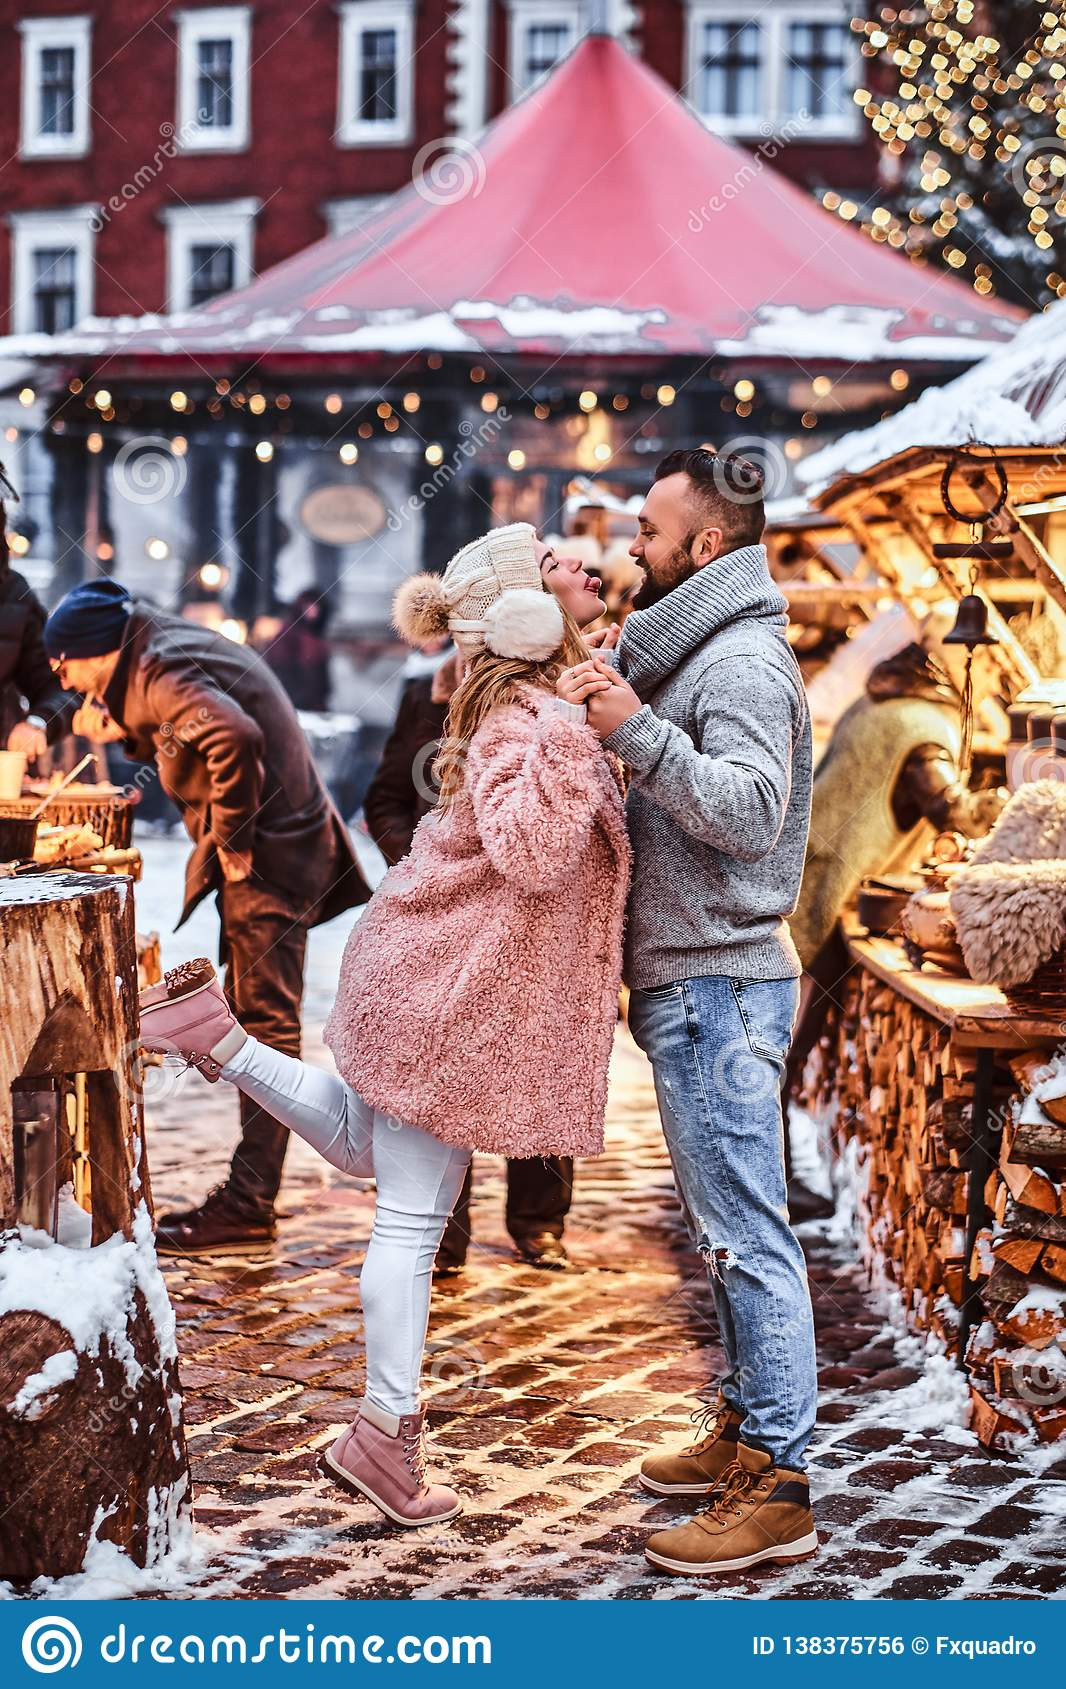 An attractive couple in love, having fun together at a Christmas fair.